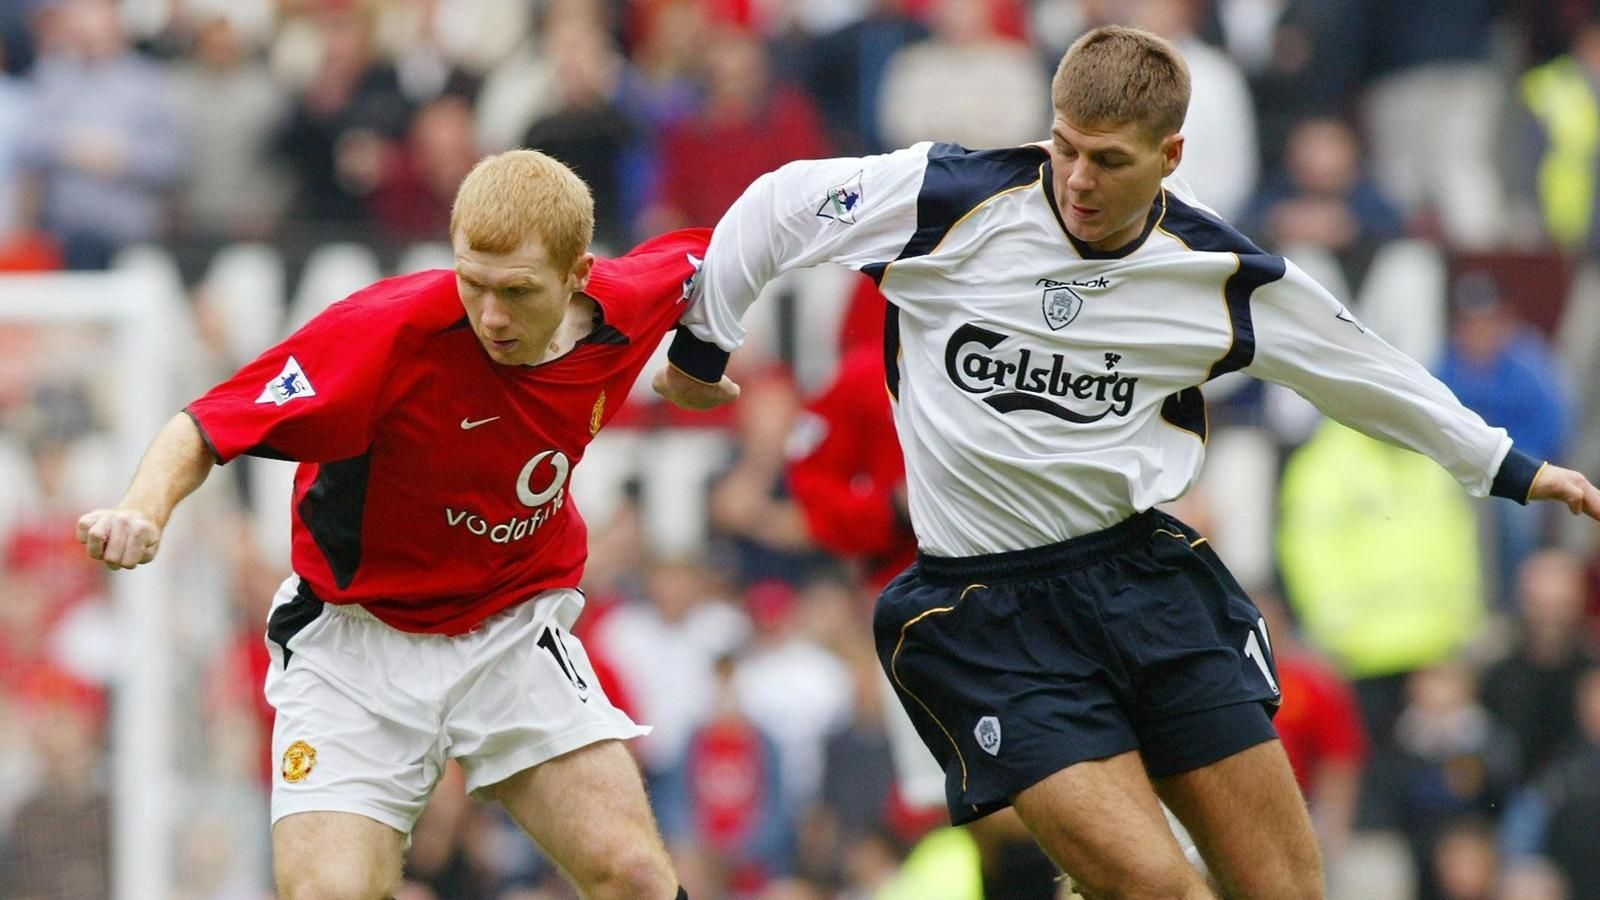 Scholes and Gerrard Predict Sundays Outcome